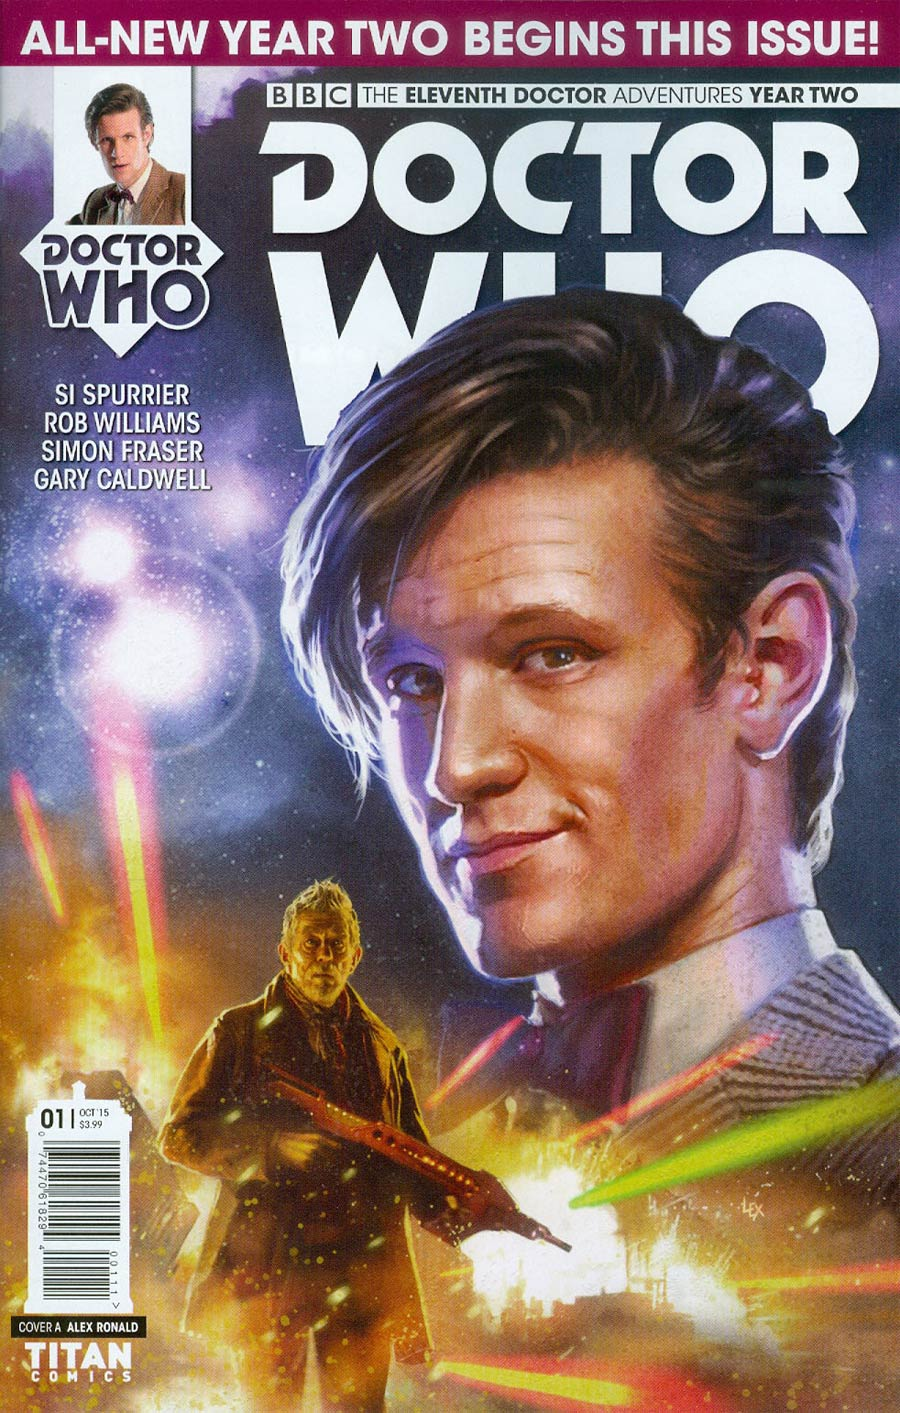 Doctor Who 11th Doctor Year Two #1 Cover A Regular Alex Ronald Cover